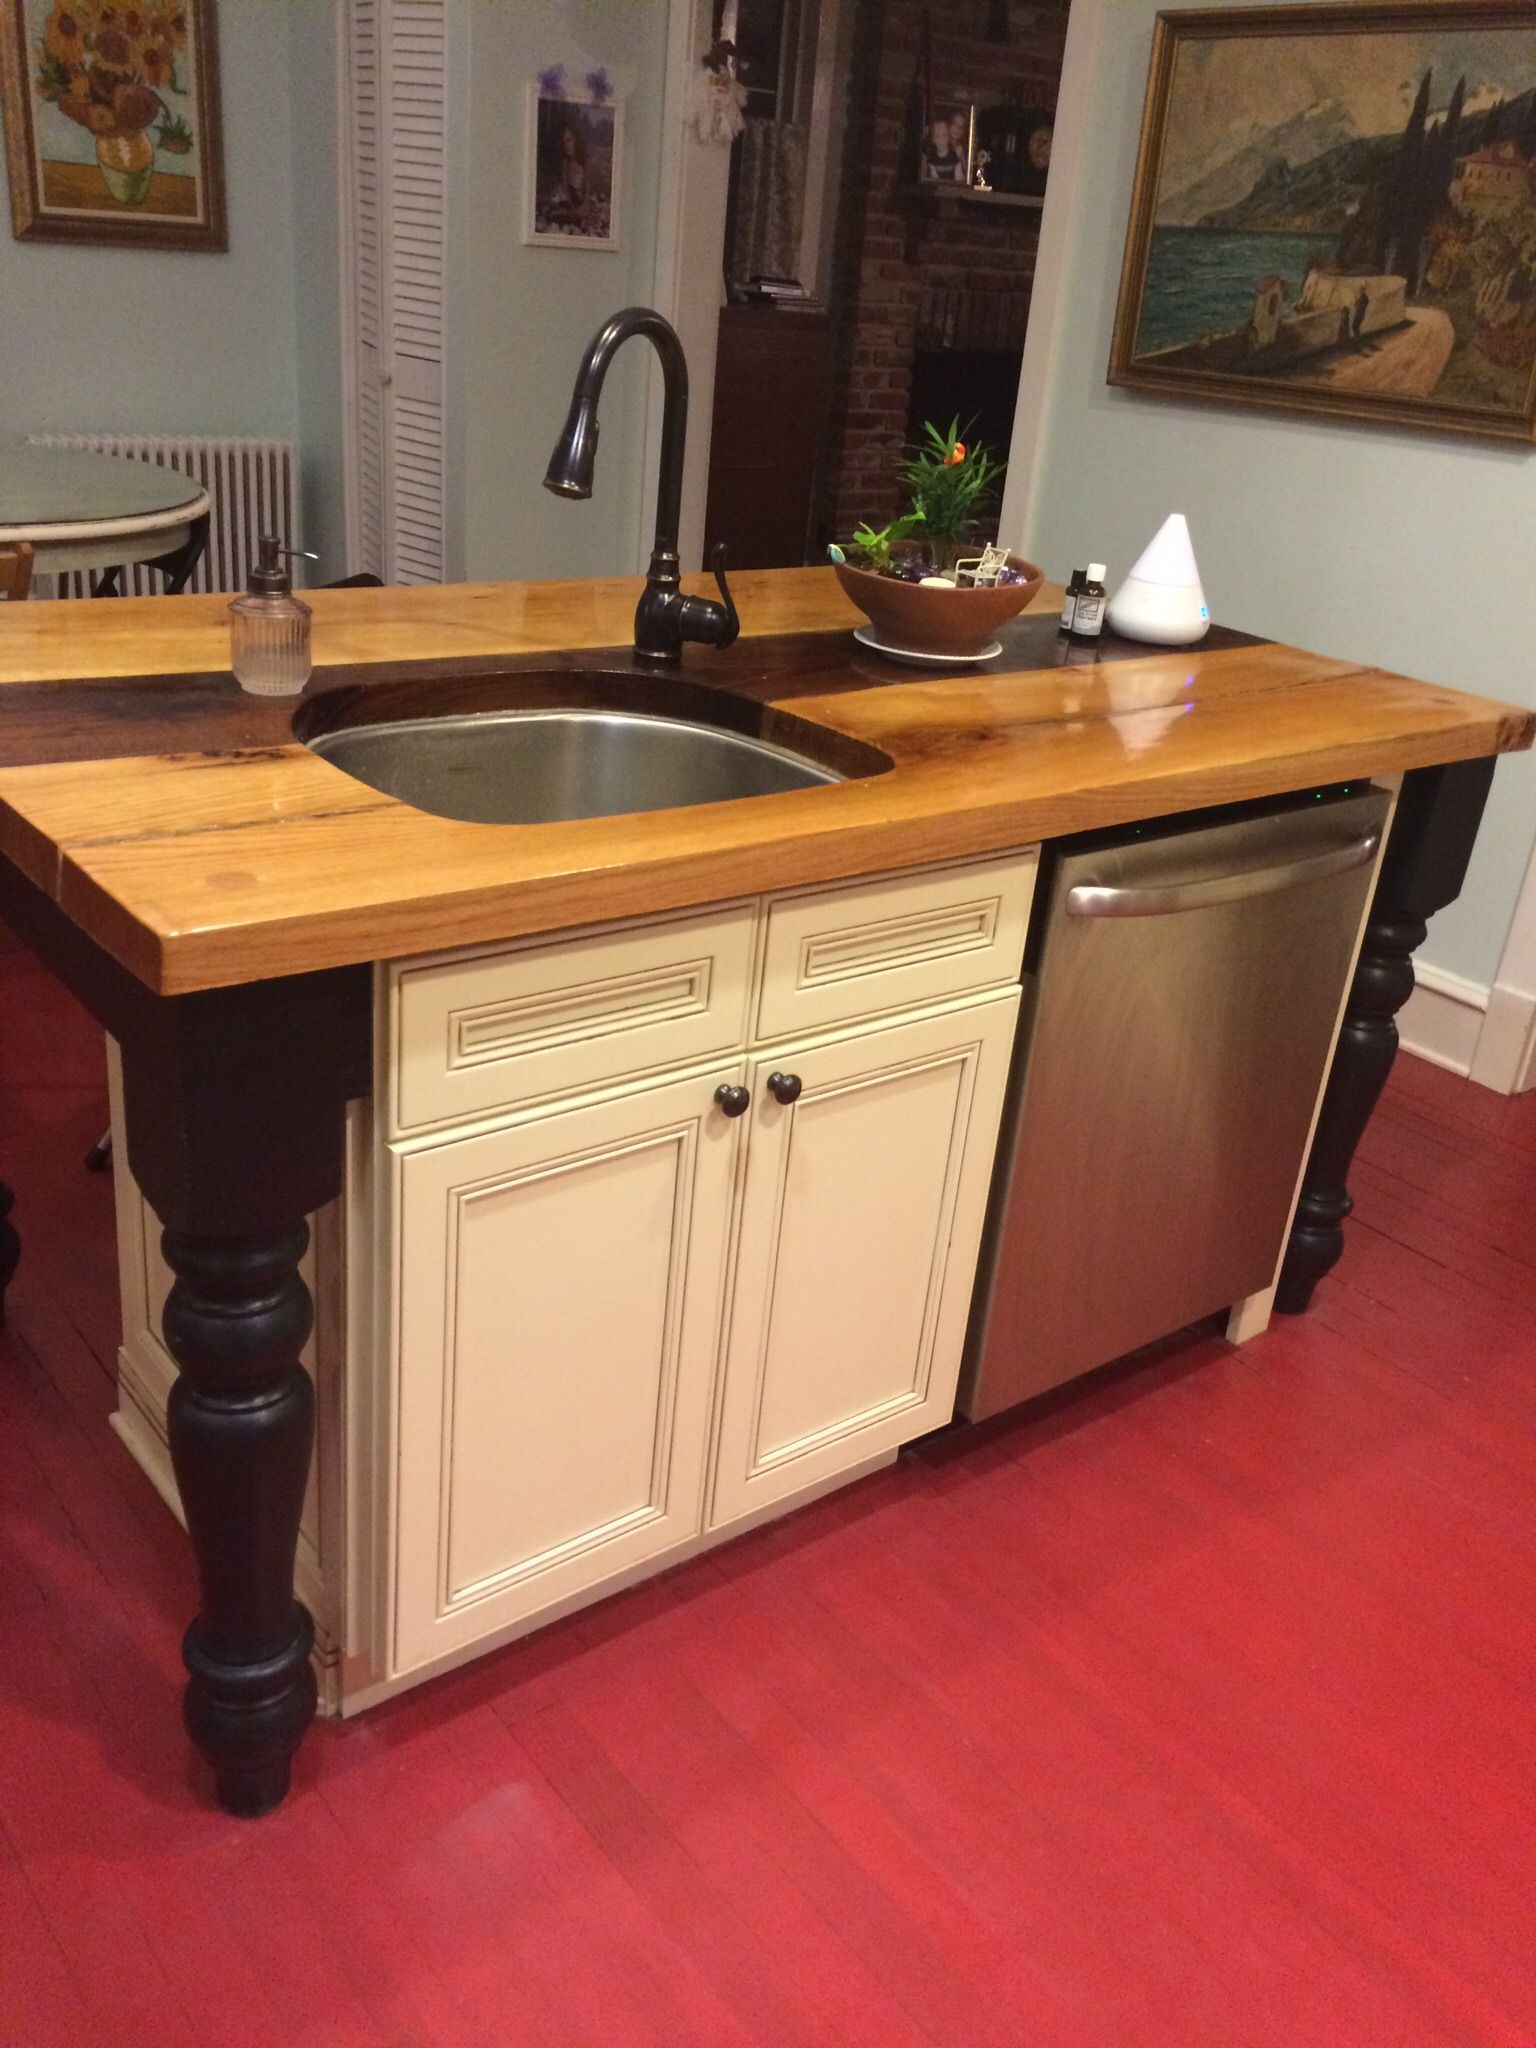 This custom wood top kitchen island with sink and dishwasher is one ...